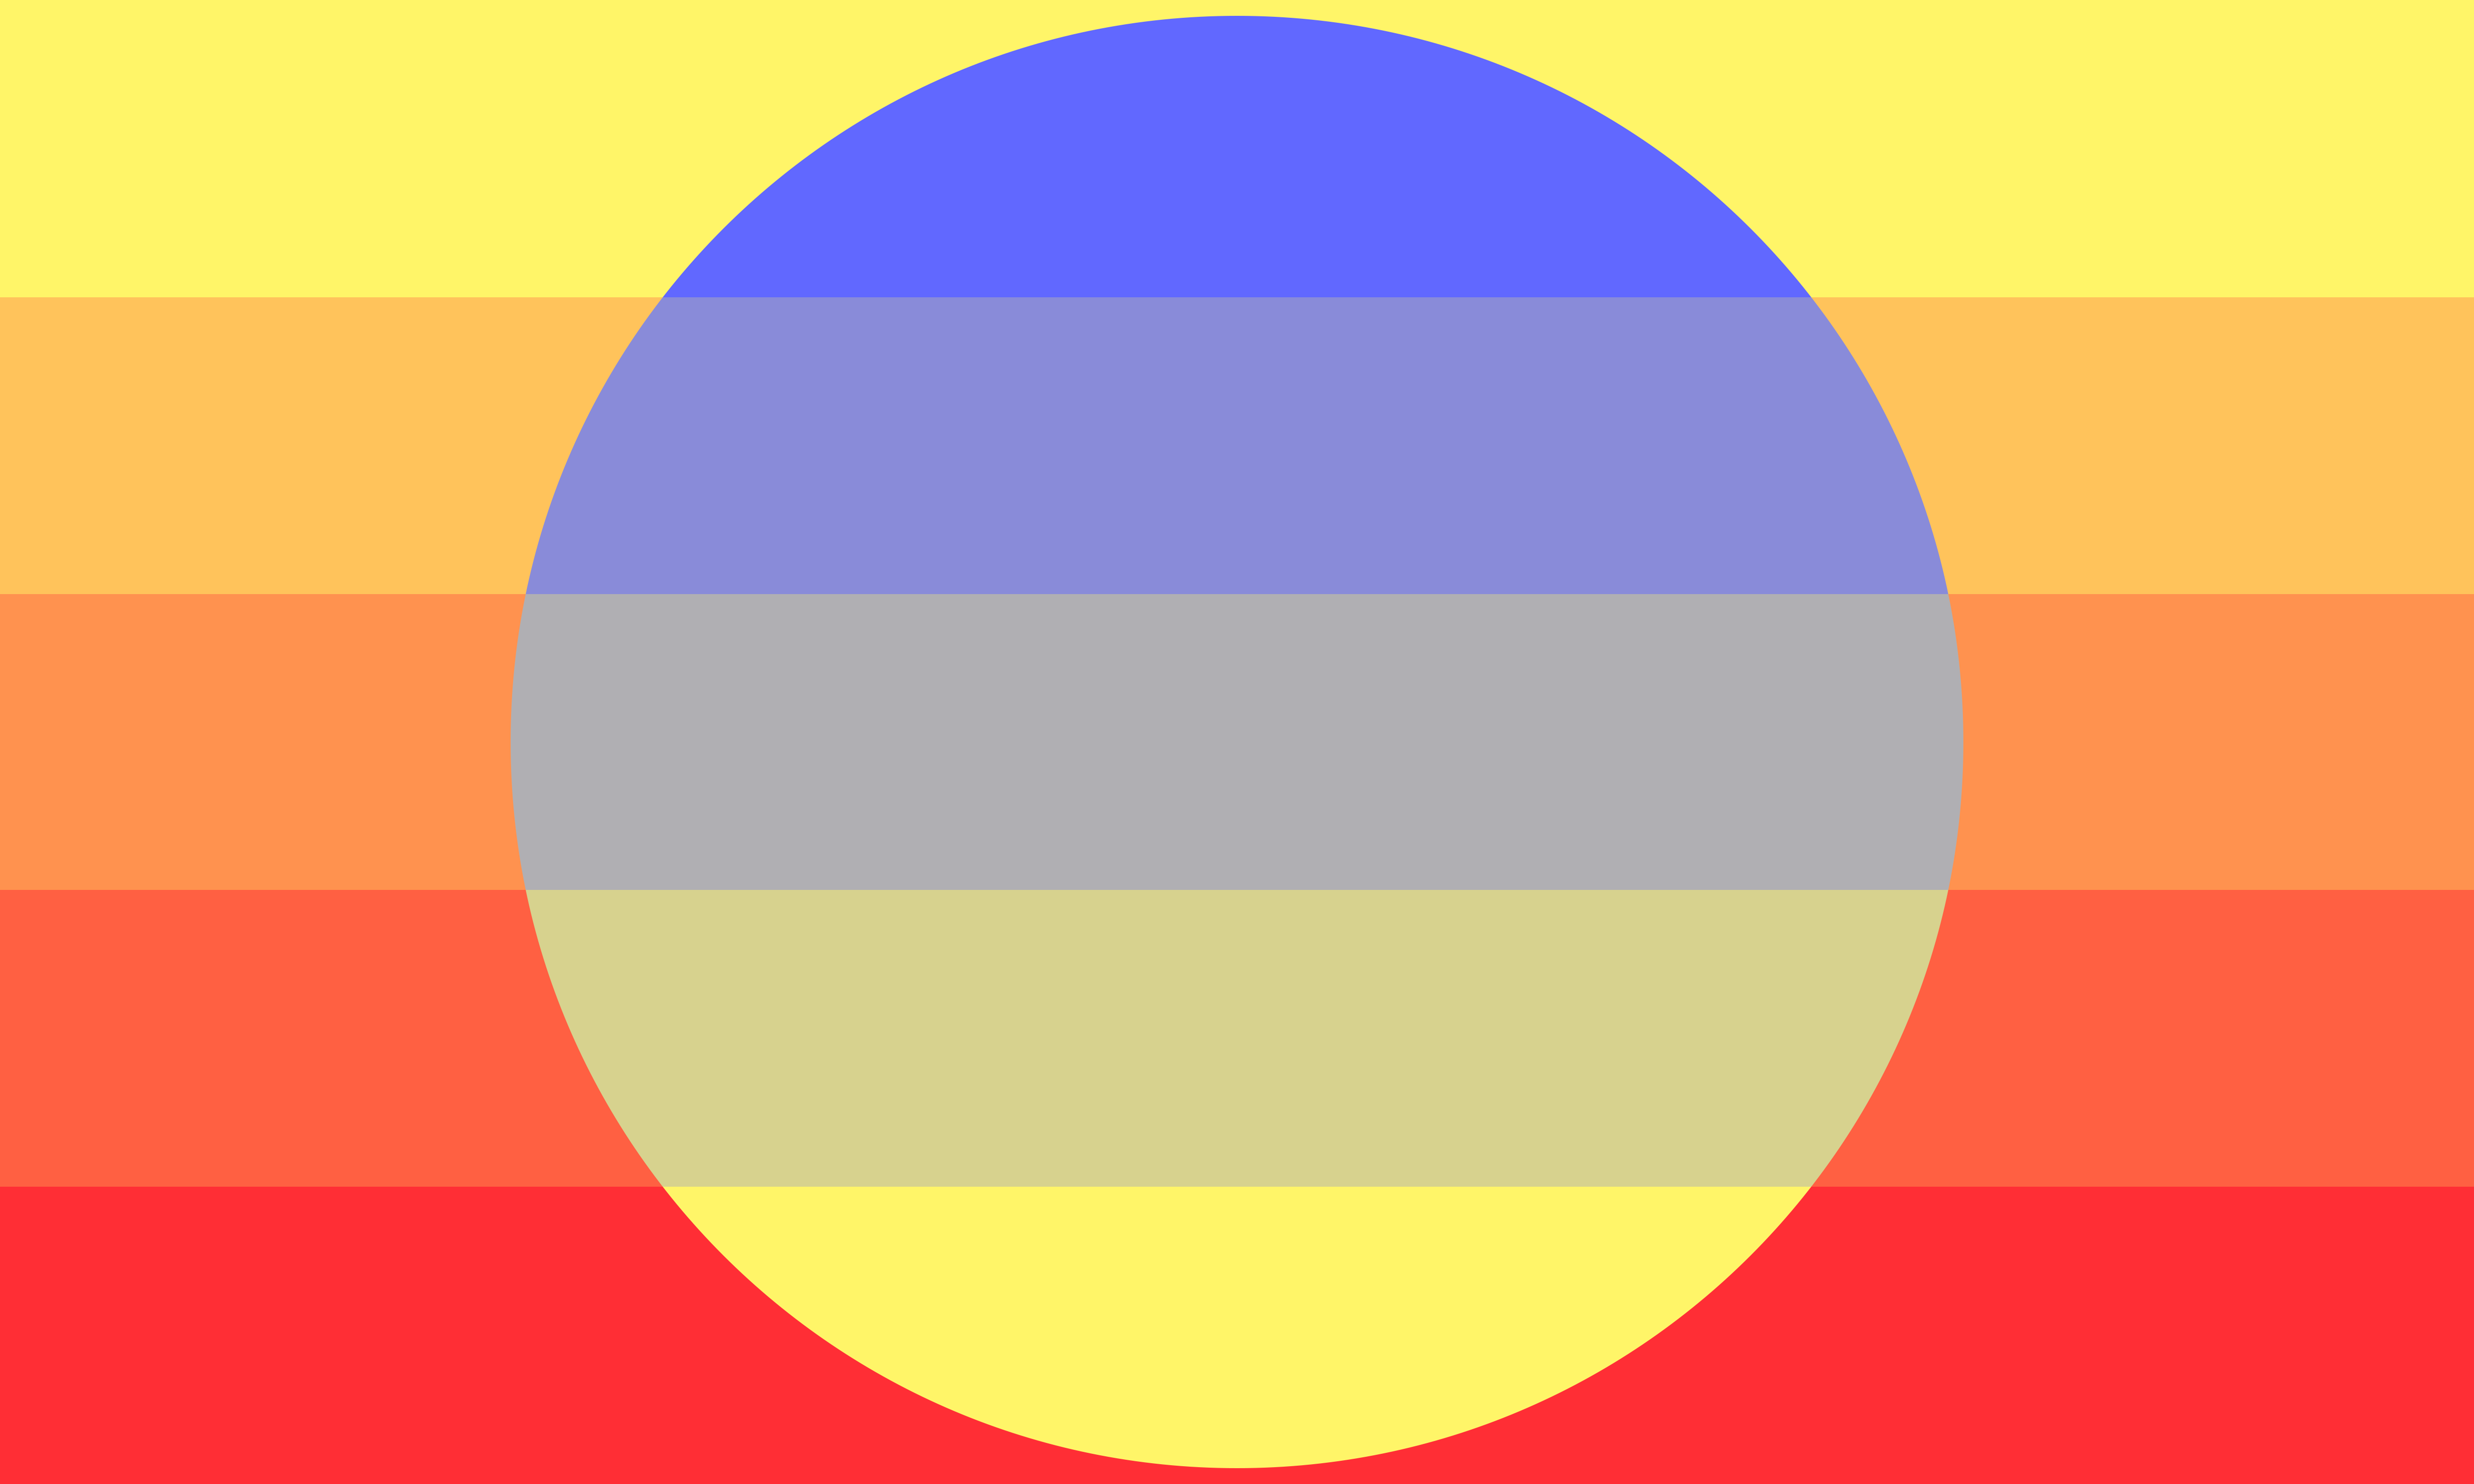 Affectugender by Pride-Flags